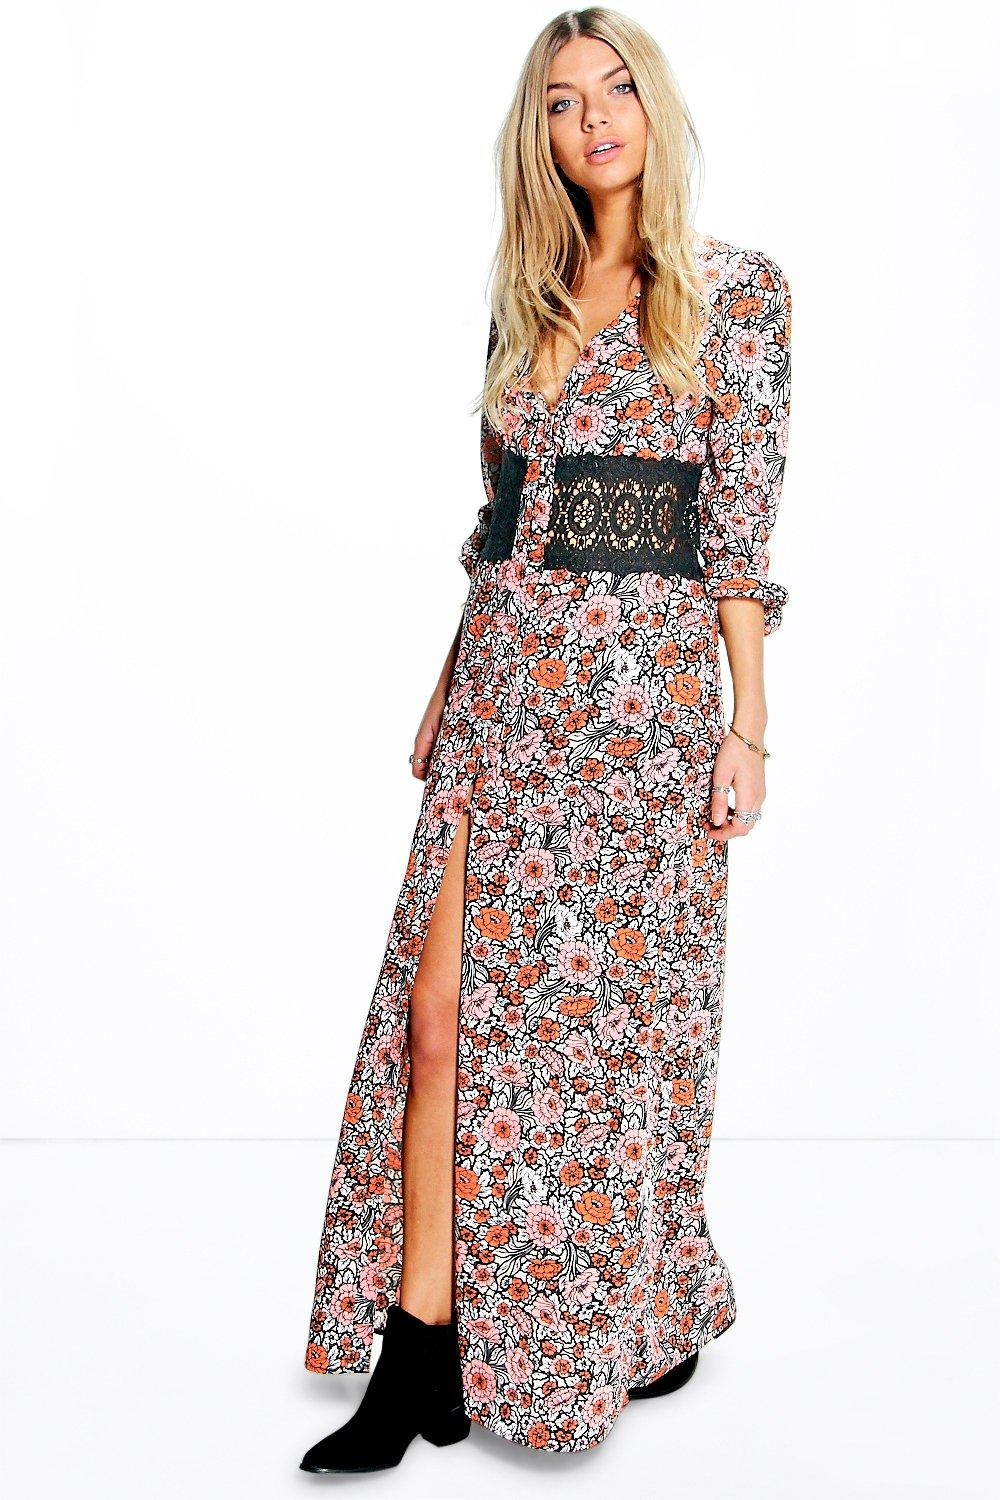 Boutique Dia Floral Lace Waist Button Maxi Dress